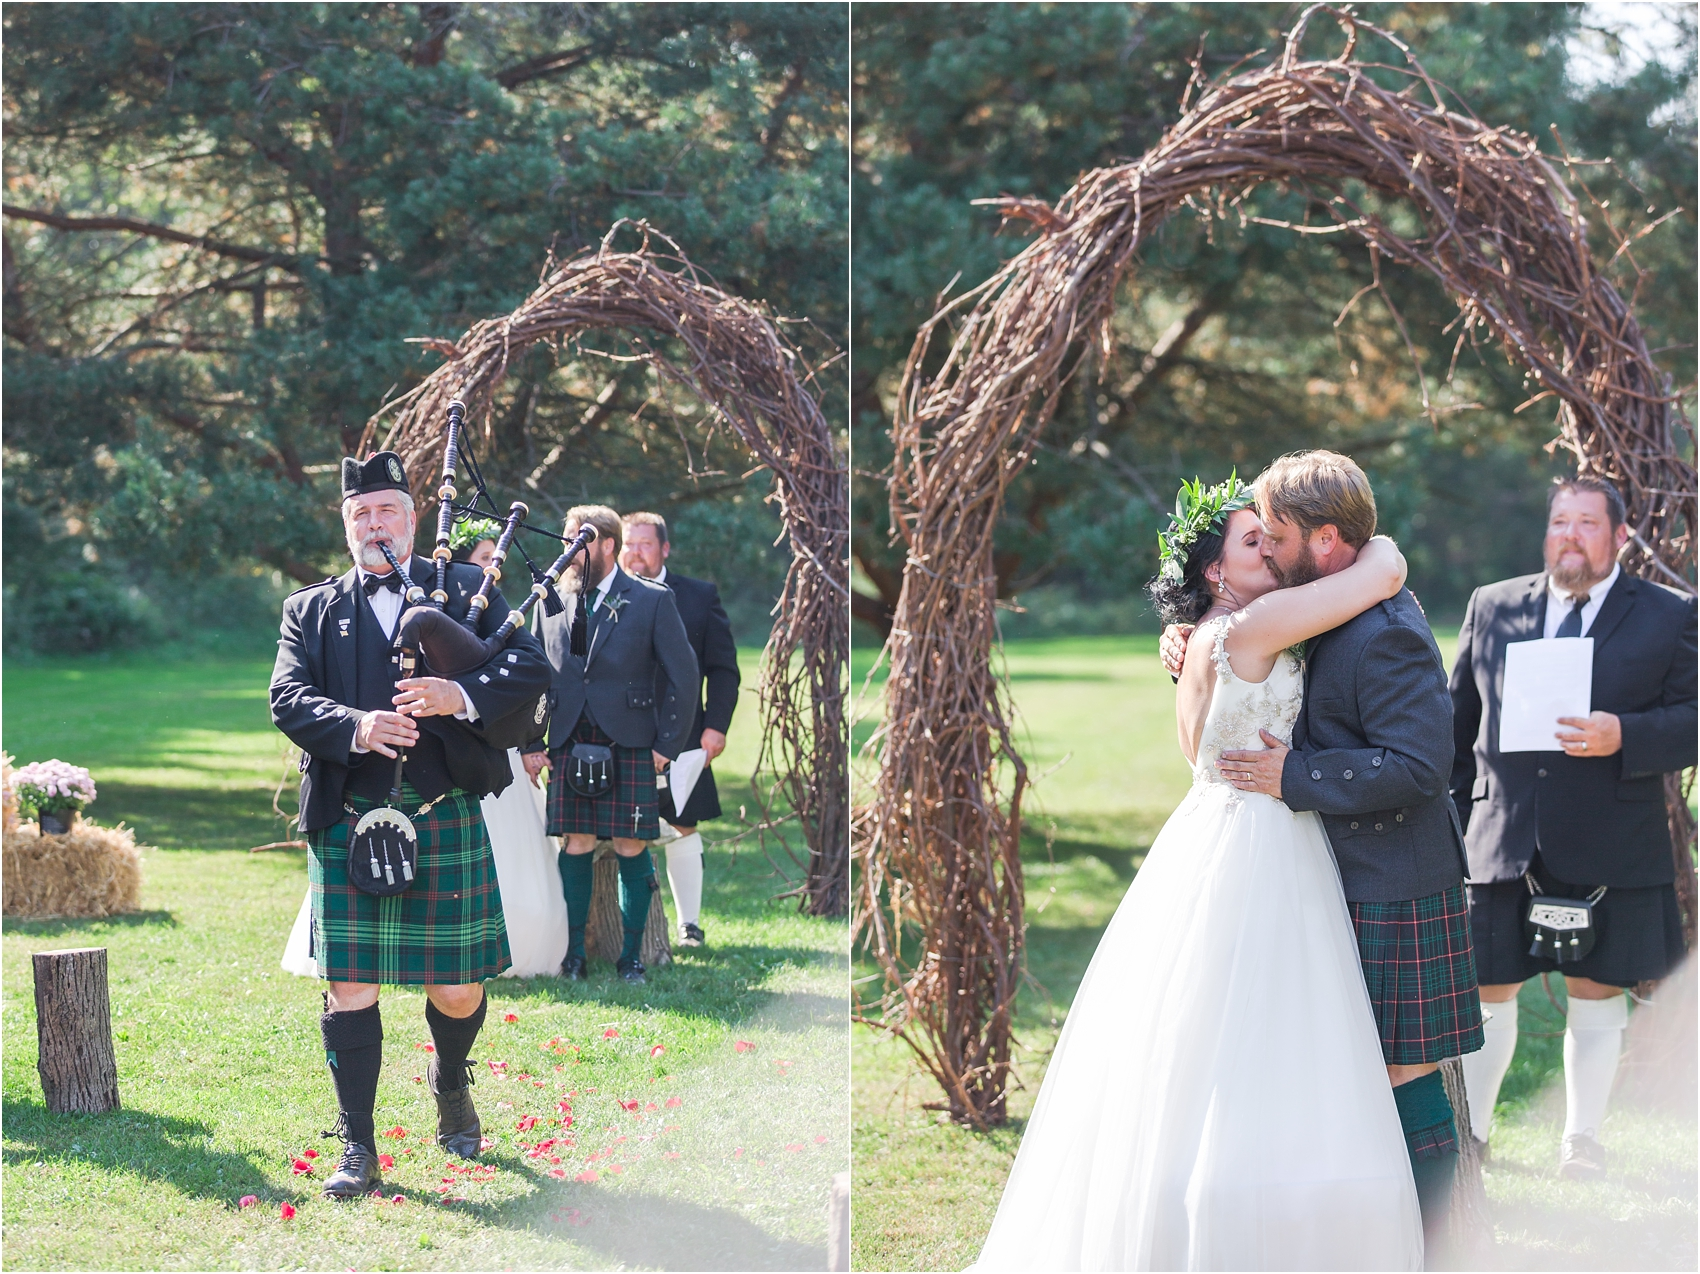 scottish-inspired-wedding-photos-in-the-country-in-port-sanilac-michigan-by-courtney-carolyn-photography_0031.jpg